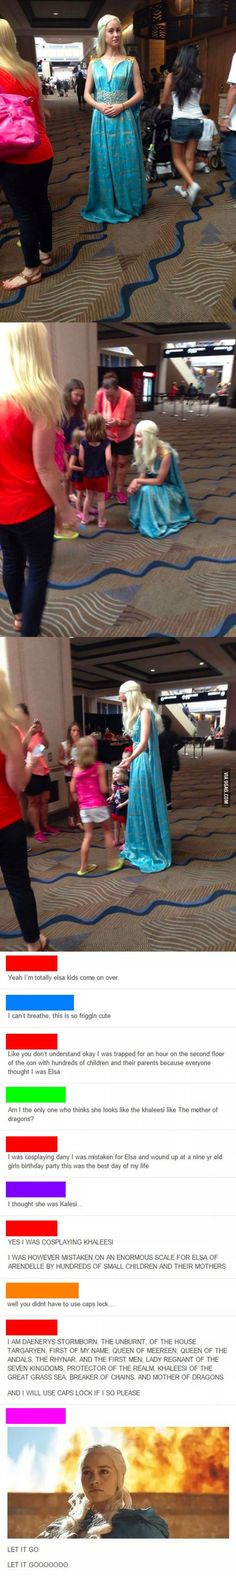 Cosplayer gets mistaken for Elsa, plays along for the kids.